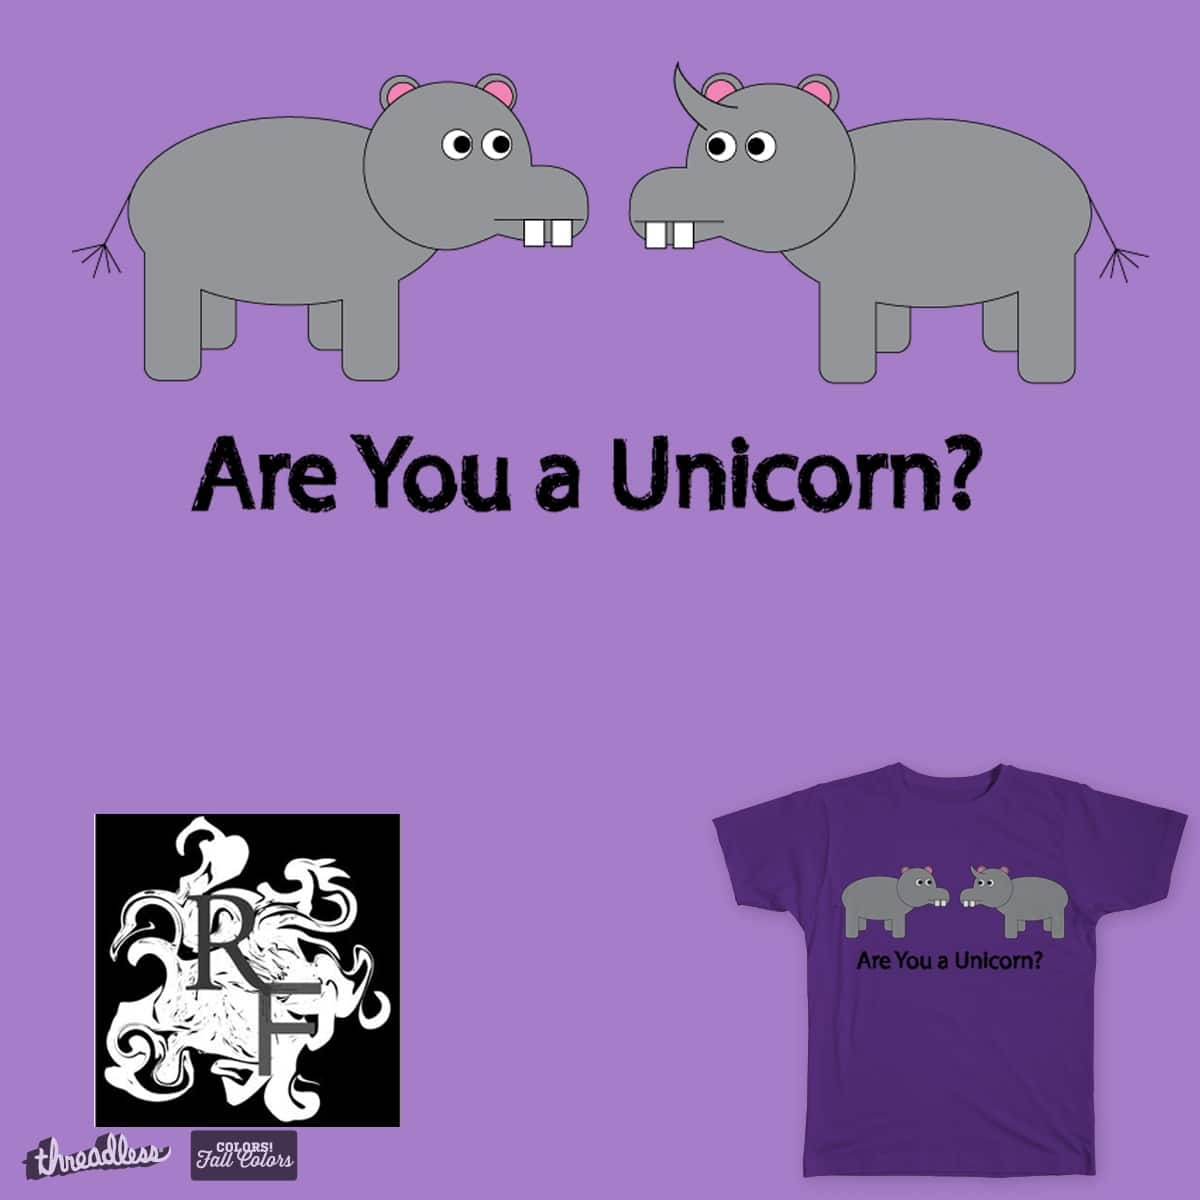 Are You a Unicorn? by RyanFoster on Threadless